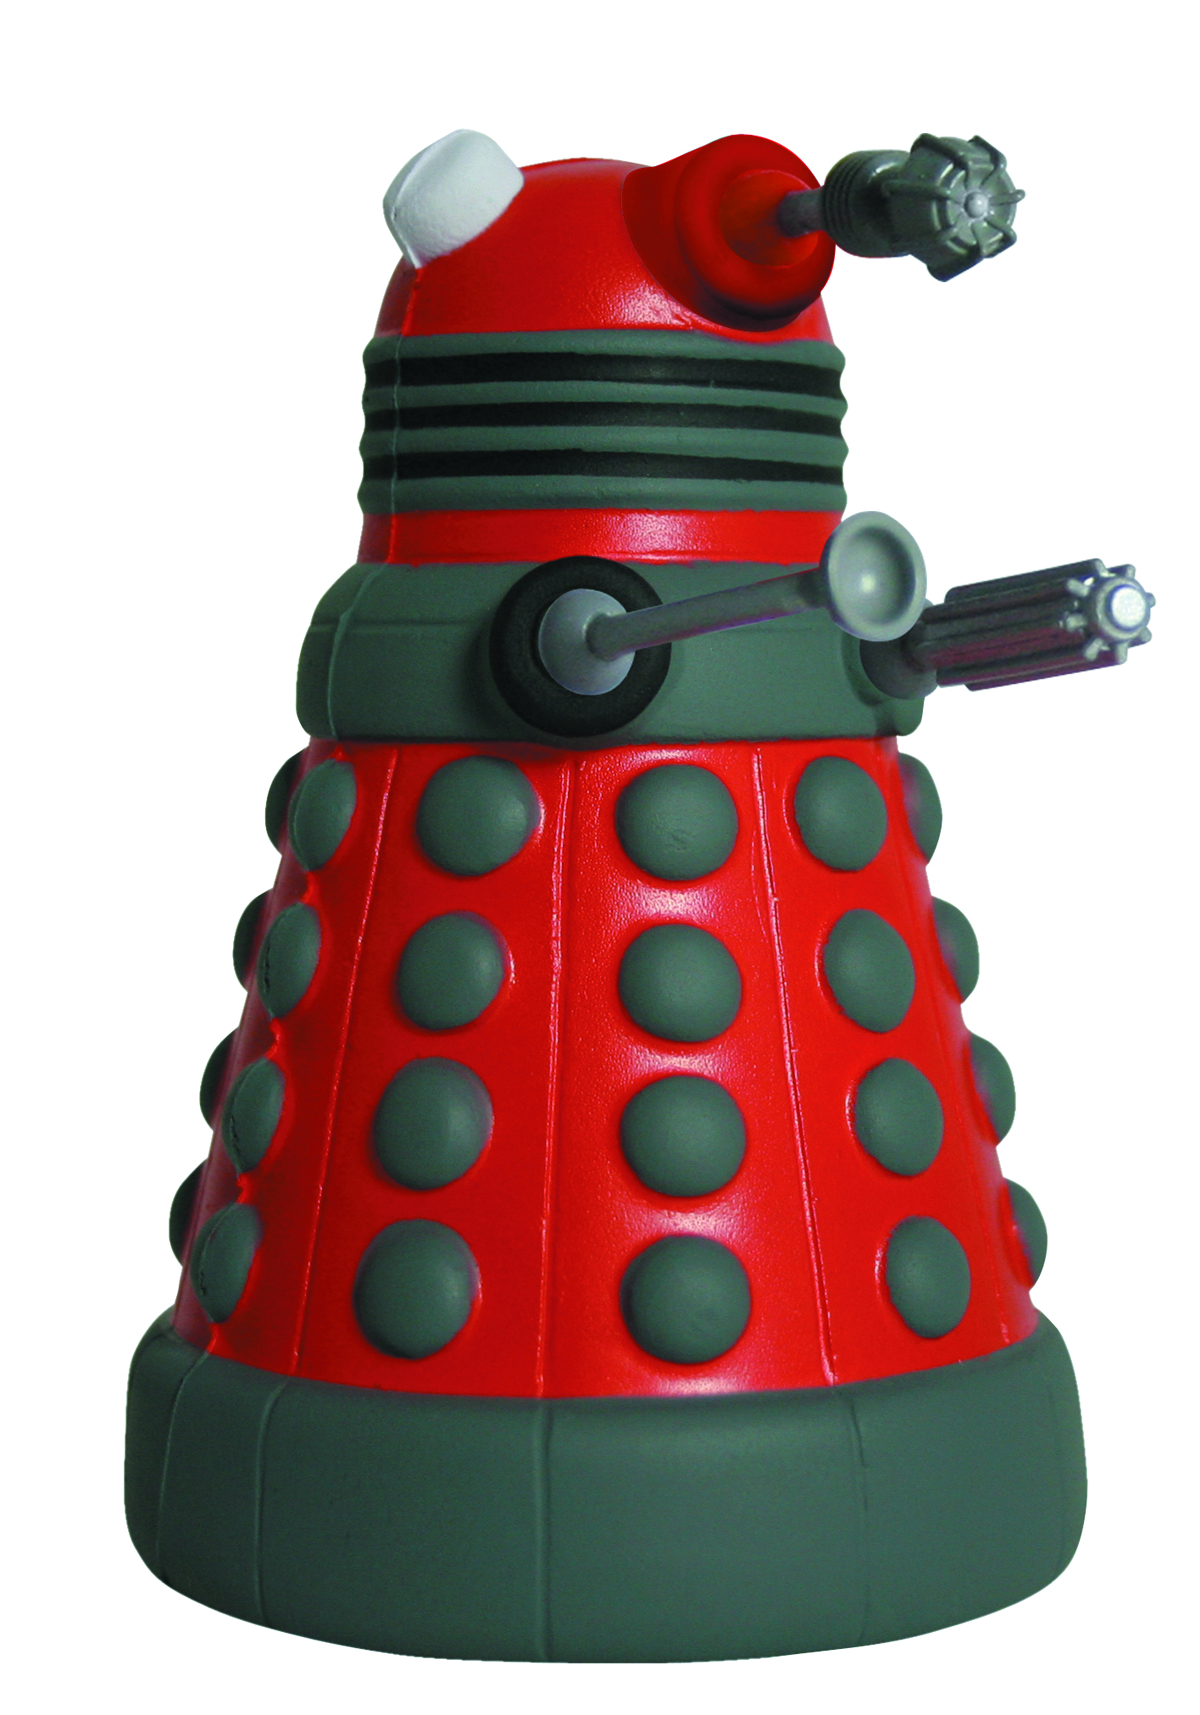 DOCTOR WHO RED DALEK SQUEEZEE STRESS TOY